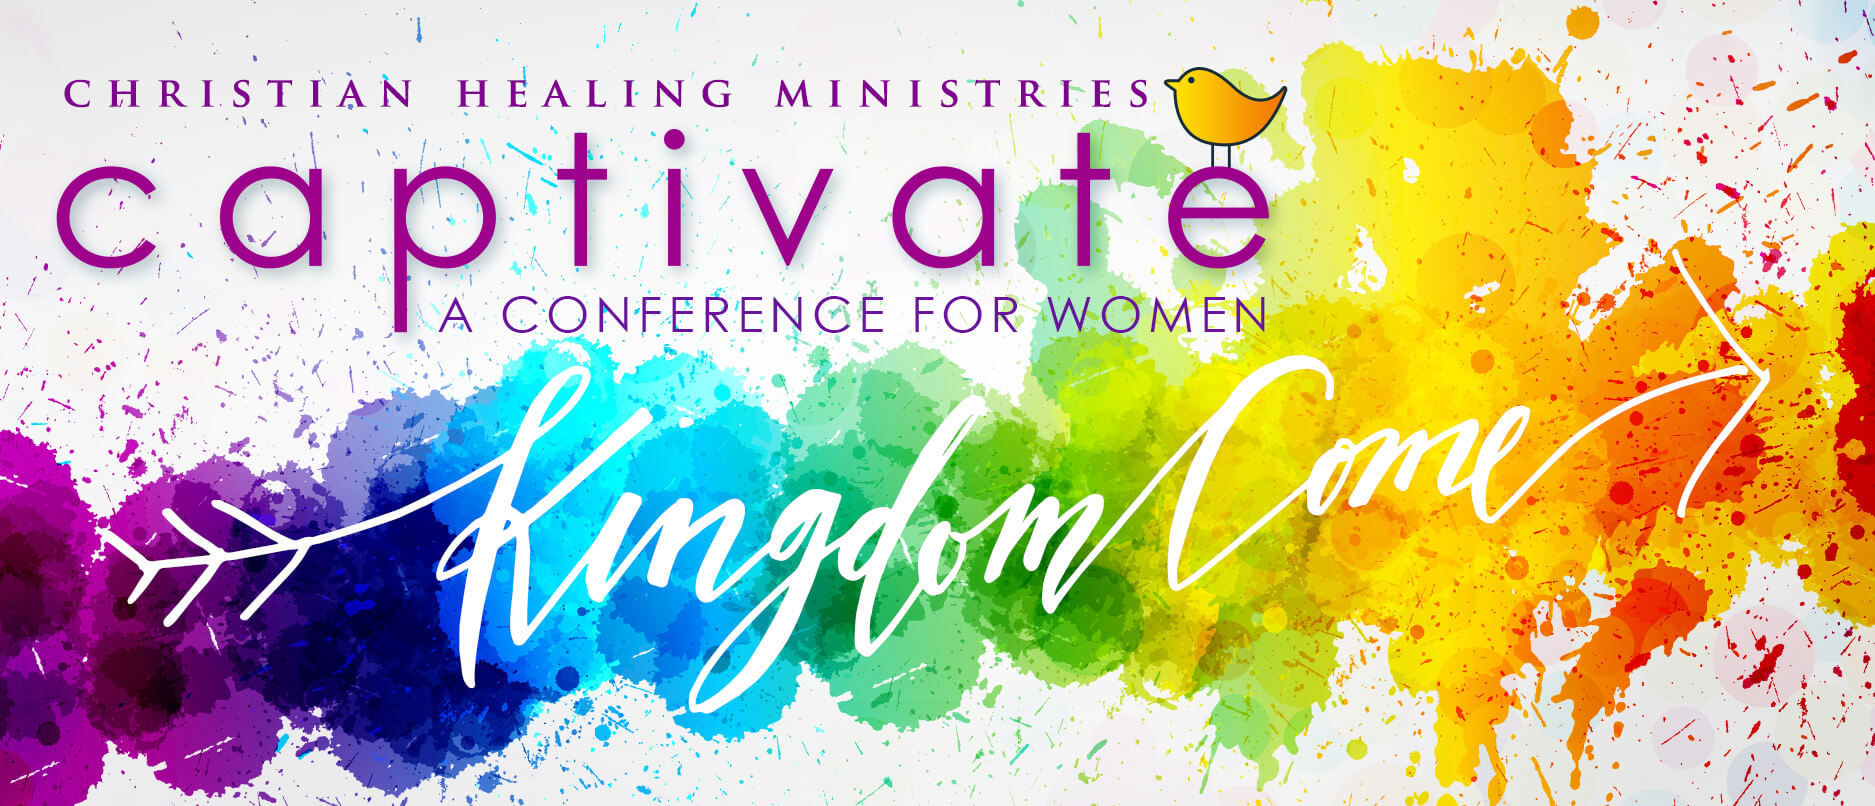 Captivate 2018 (women's conference) - Video